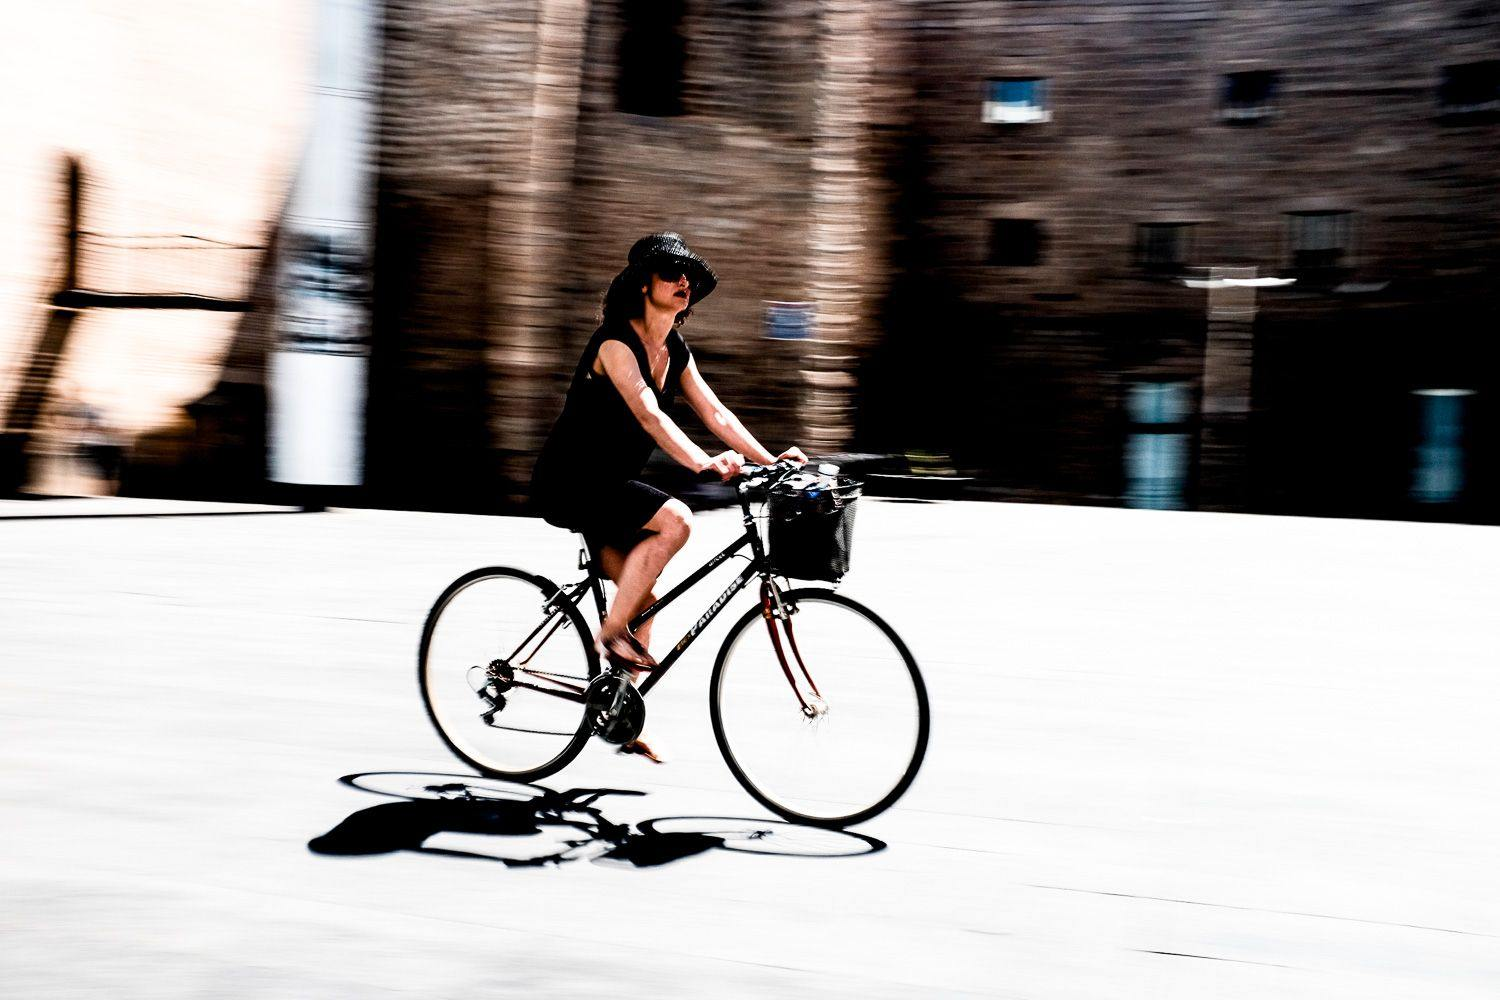 Street photo of woman on a bicycle